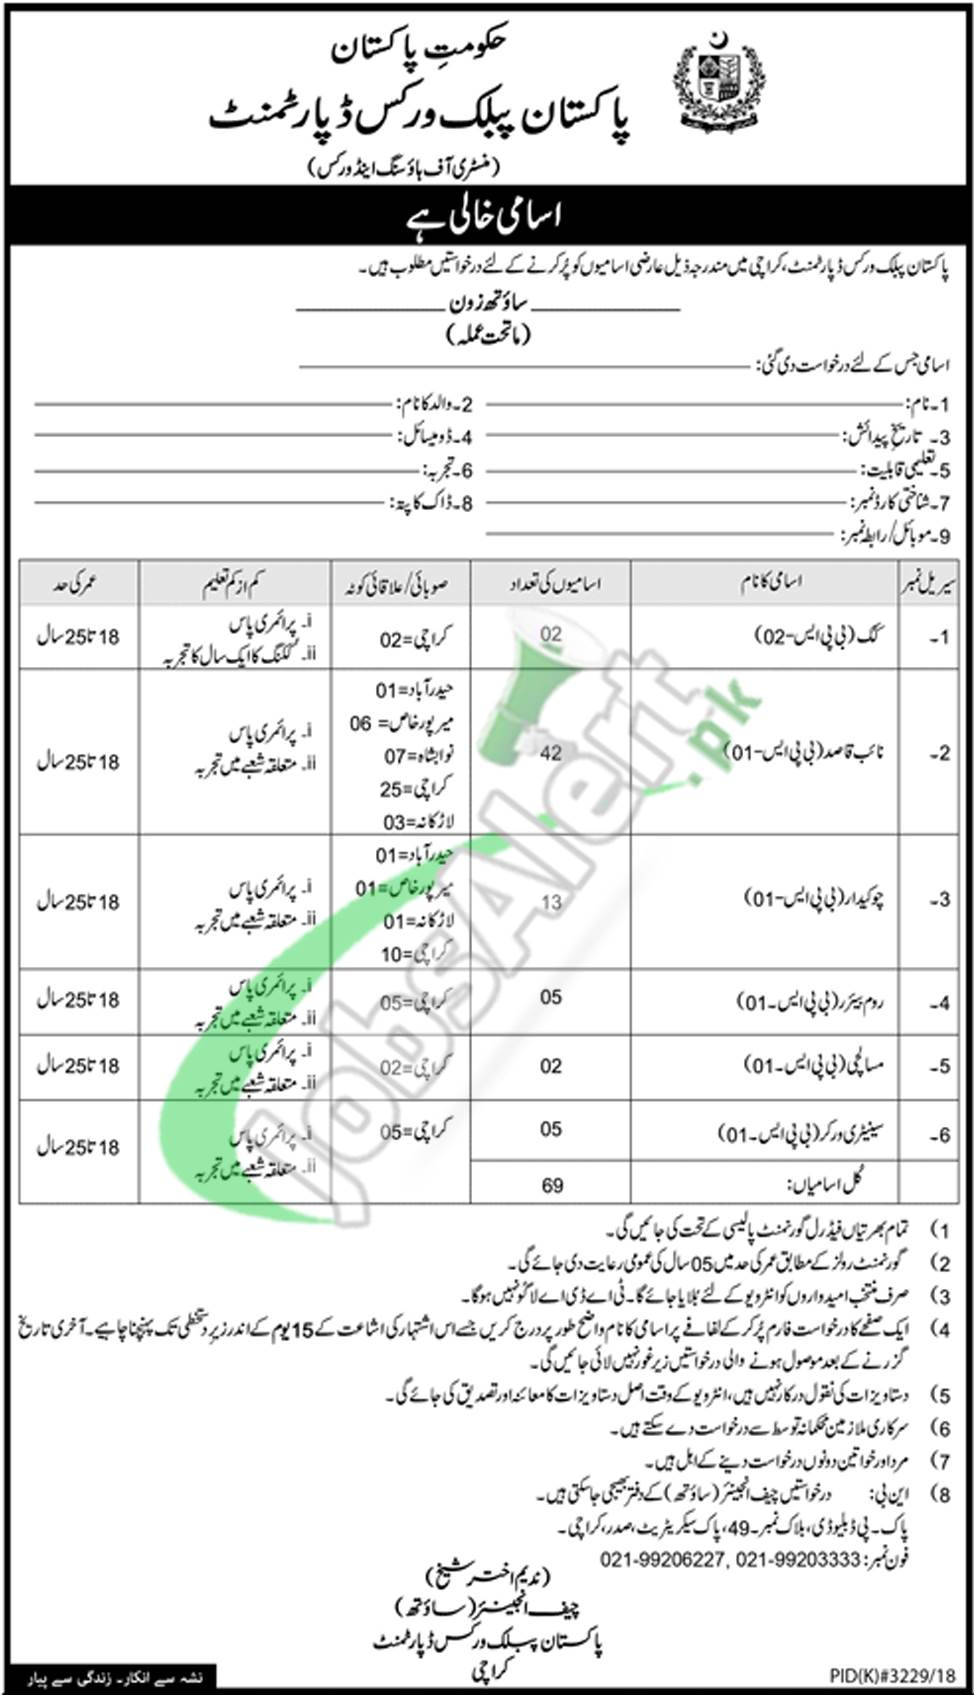 PWD Islamabad Jobs 2019 Pakistan Public Works Department Latest